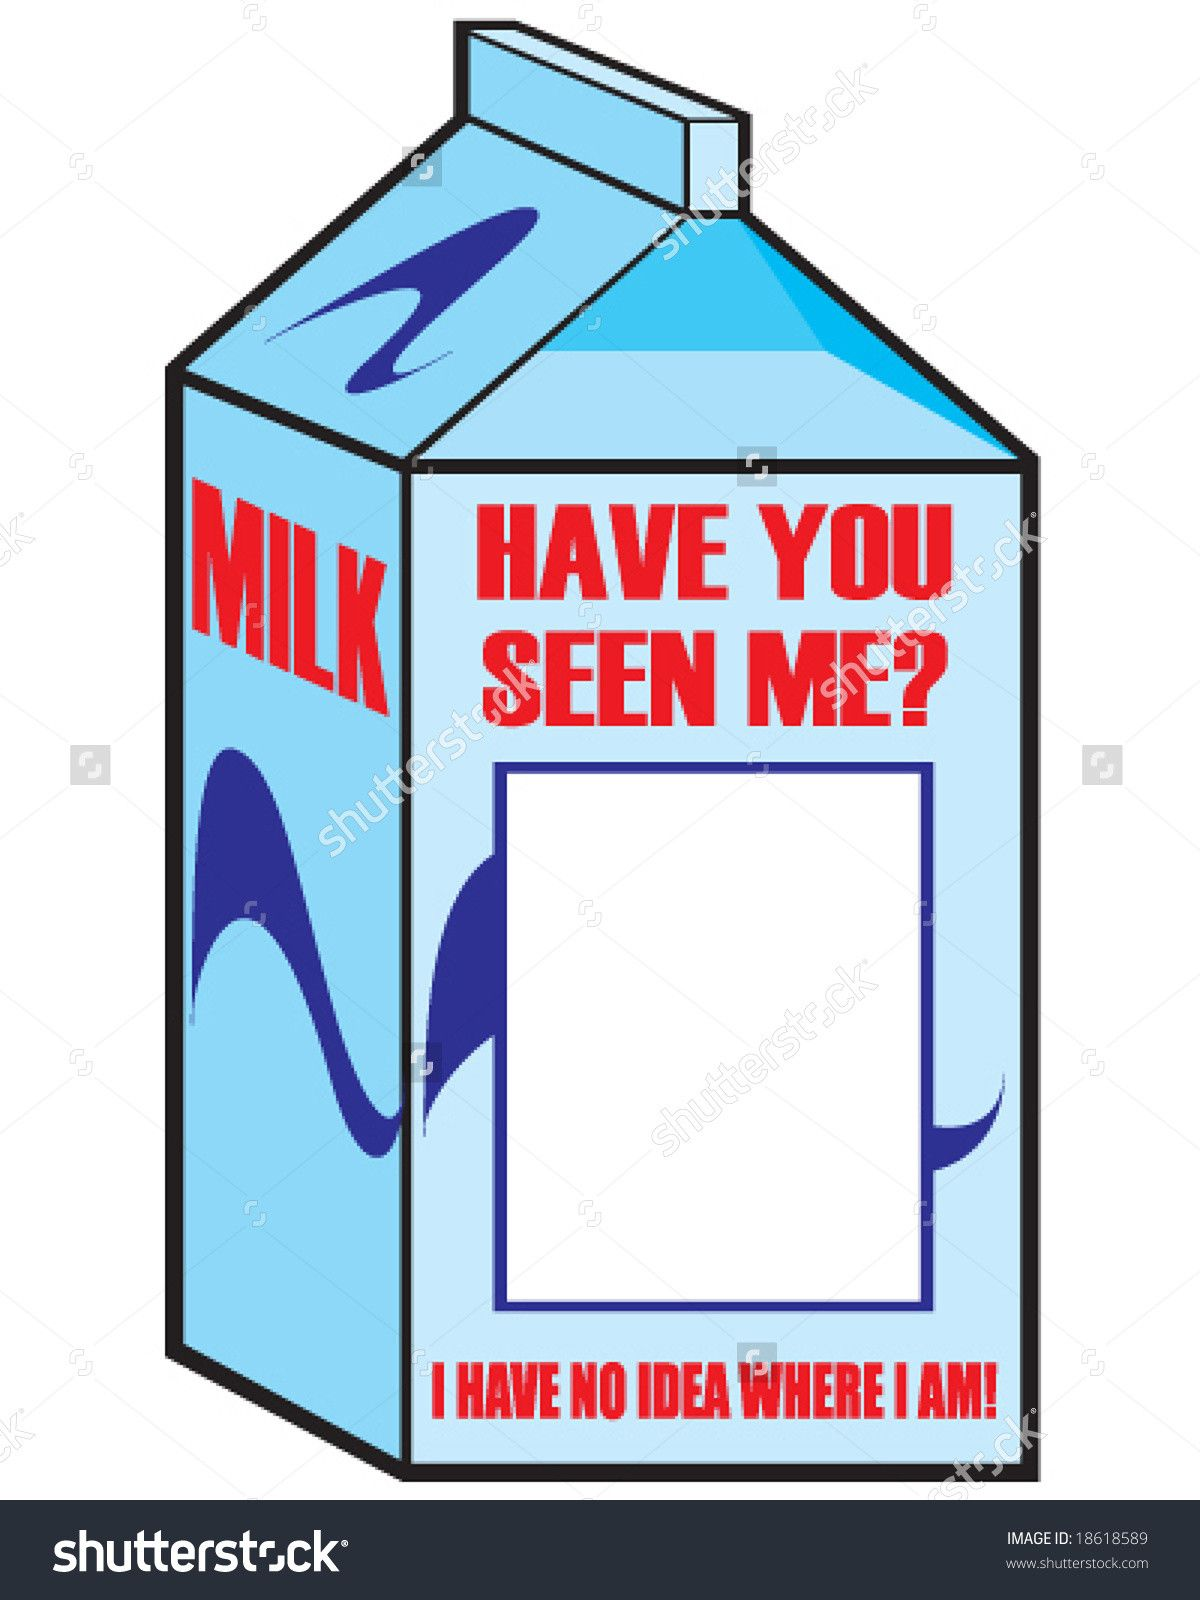 MISSING Milk Missing Person Milk Carton Template Group With...